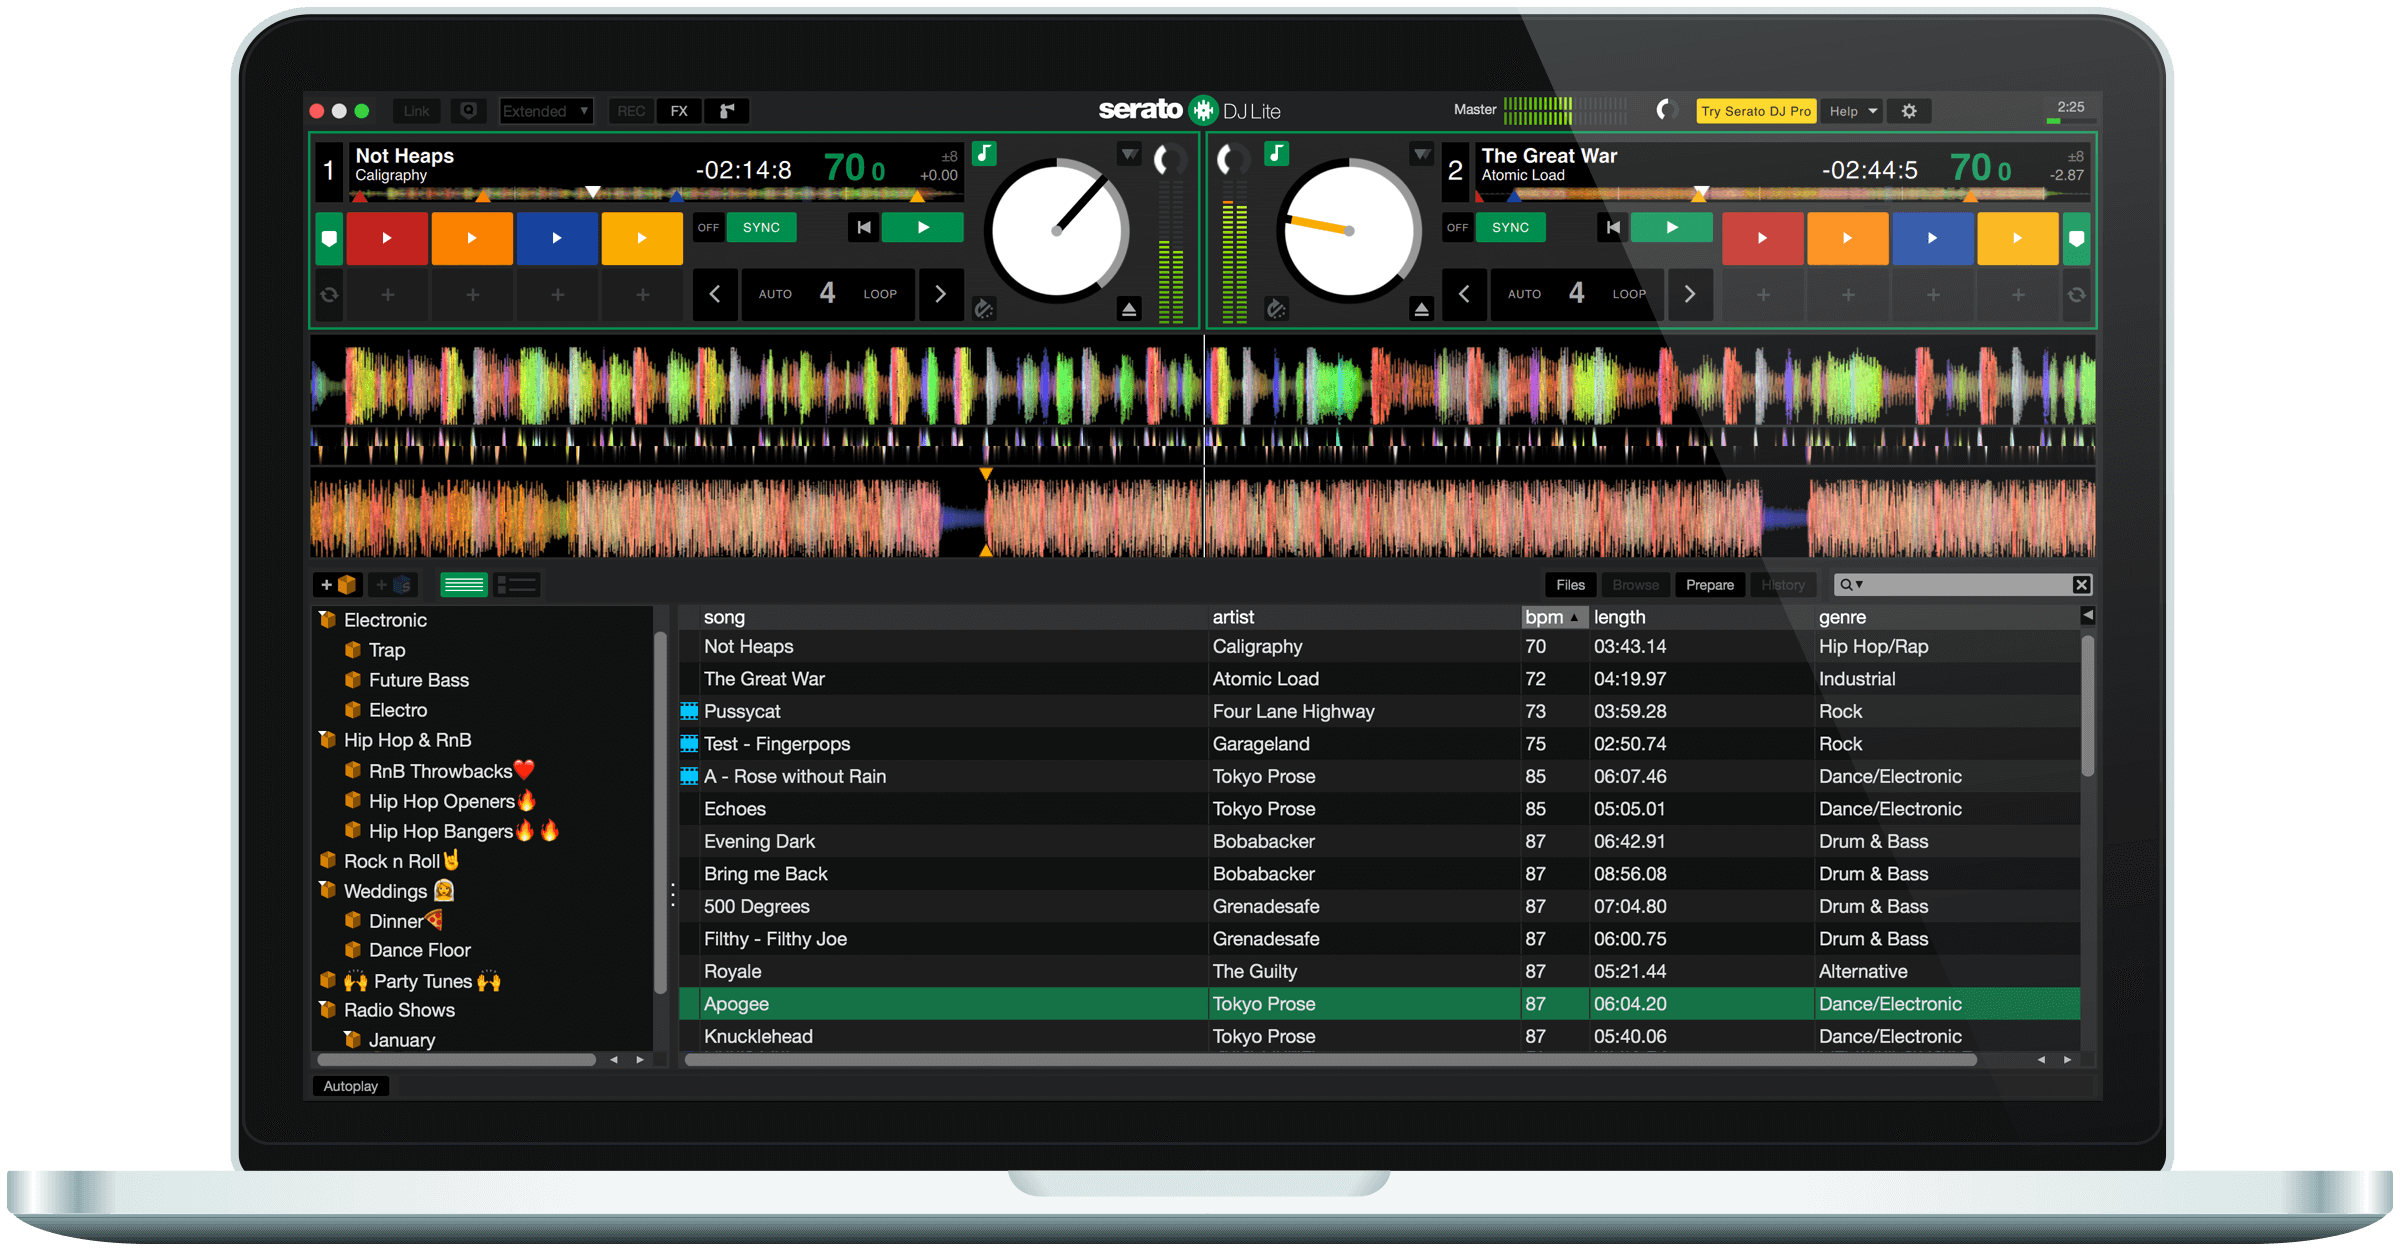 Full Serato DJ Lite screenshot